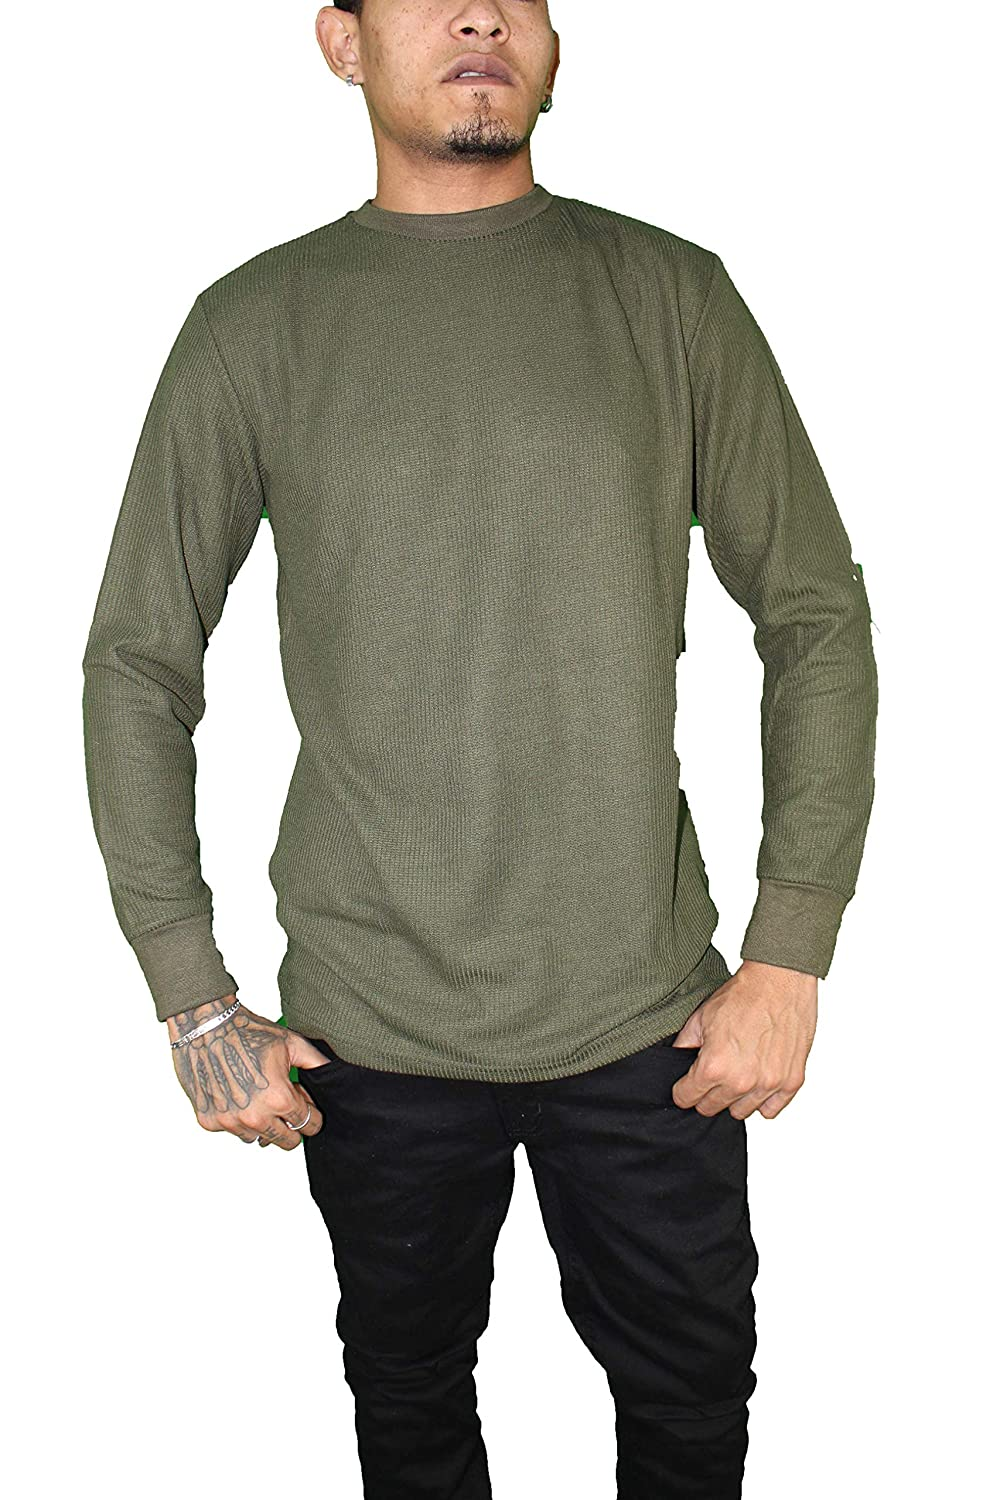 Mens Thermal Shirt Heavyweight Long Sleeve Top Waffle Weave Crew Neck Size S-5X Big & Tall